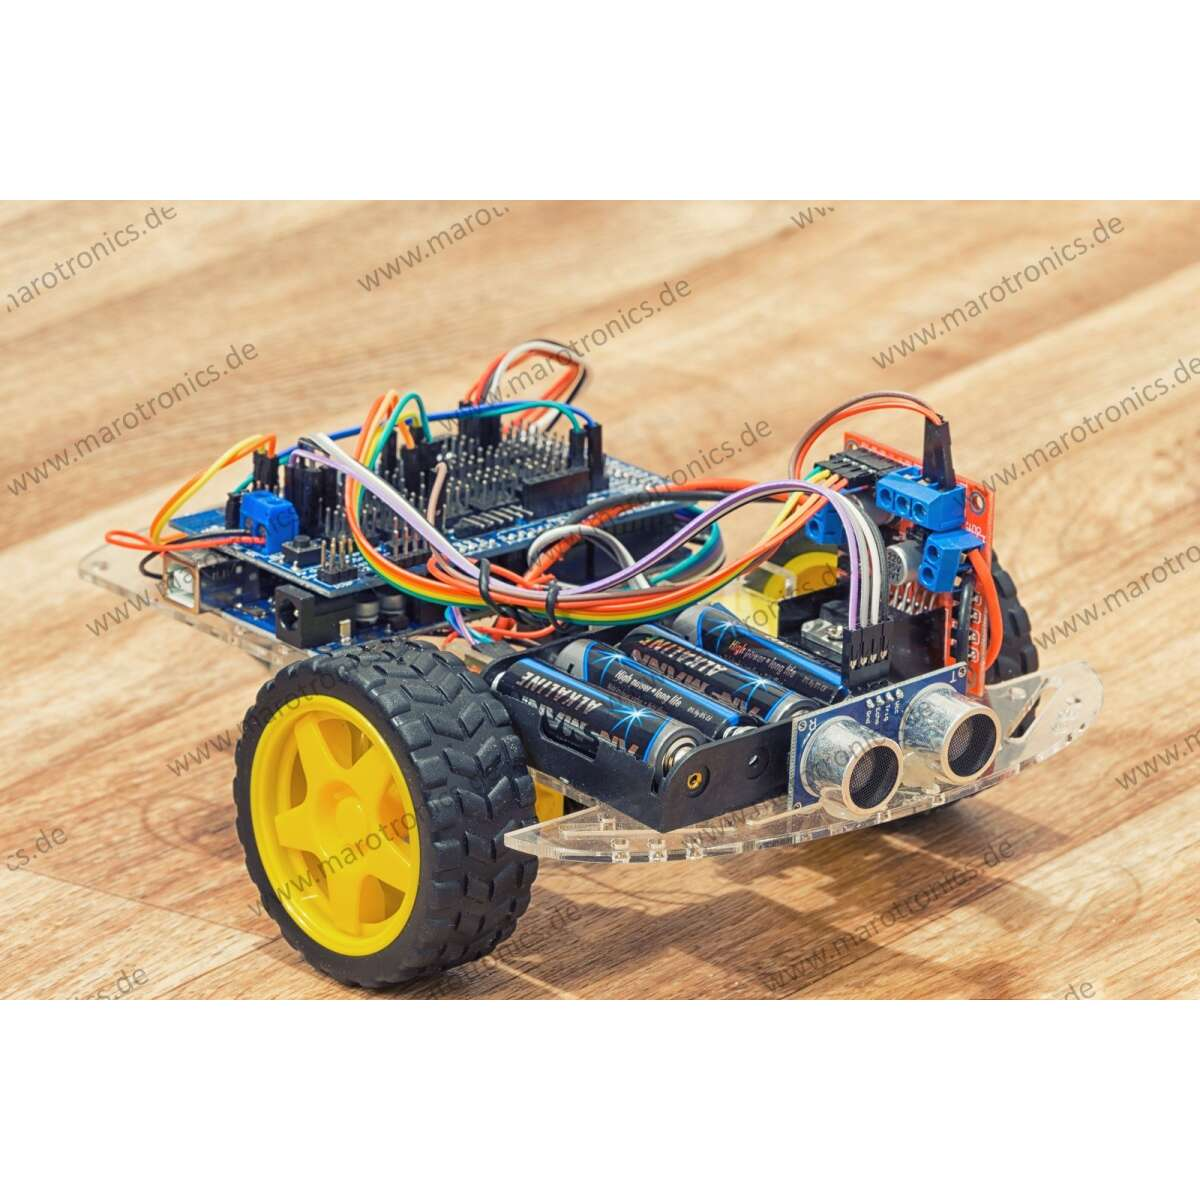 mini ardumower starter kit 2wd plattform f r arduino roboter mit. Black Bedroom Furniture Sets. Home Design Ideas